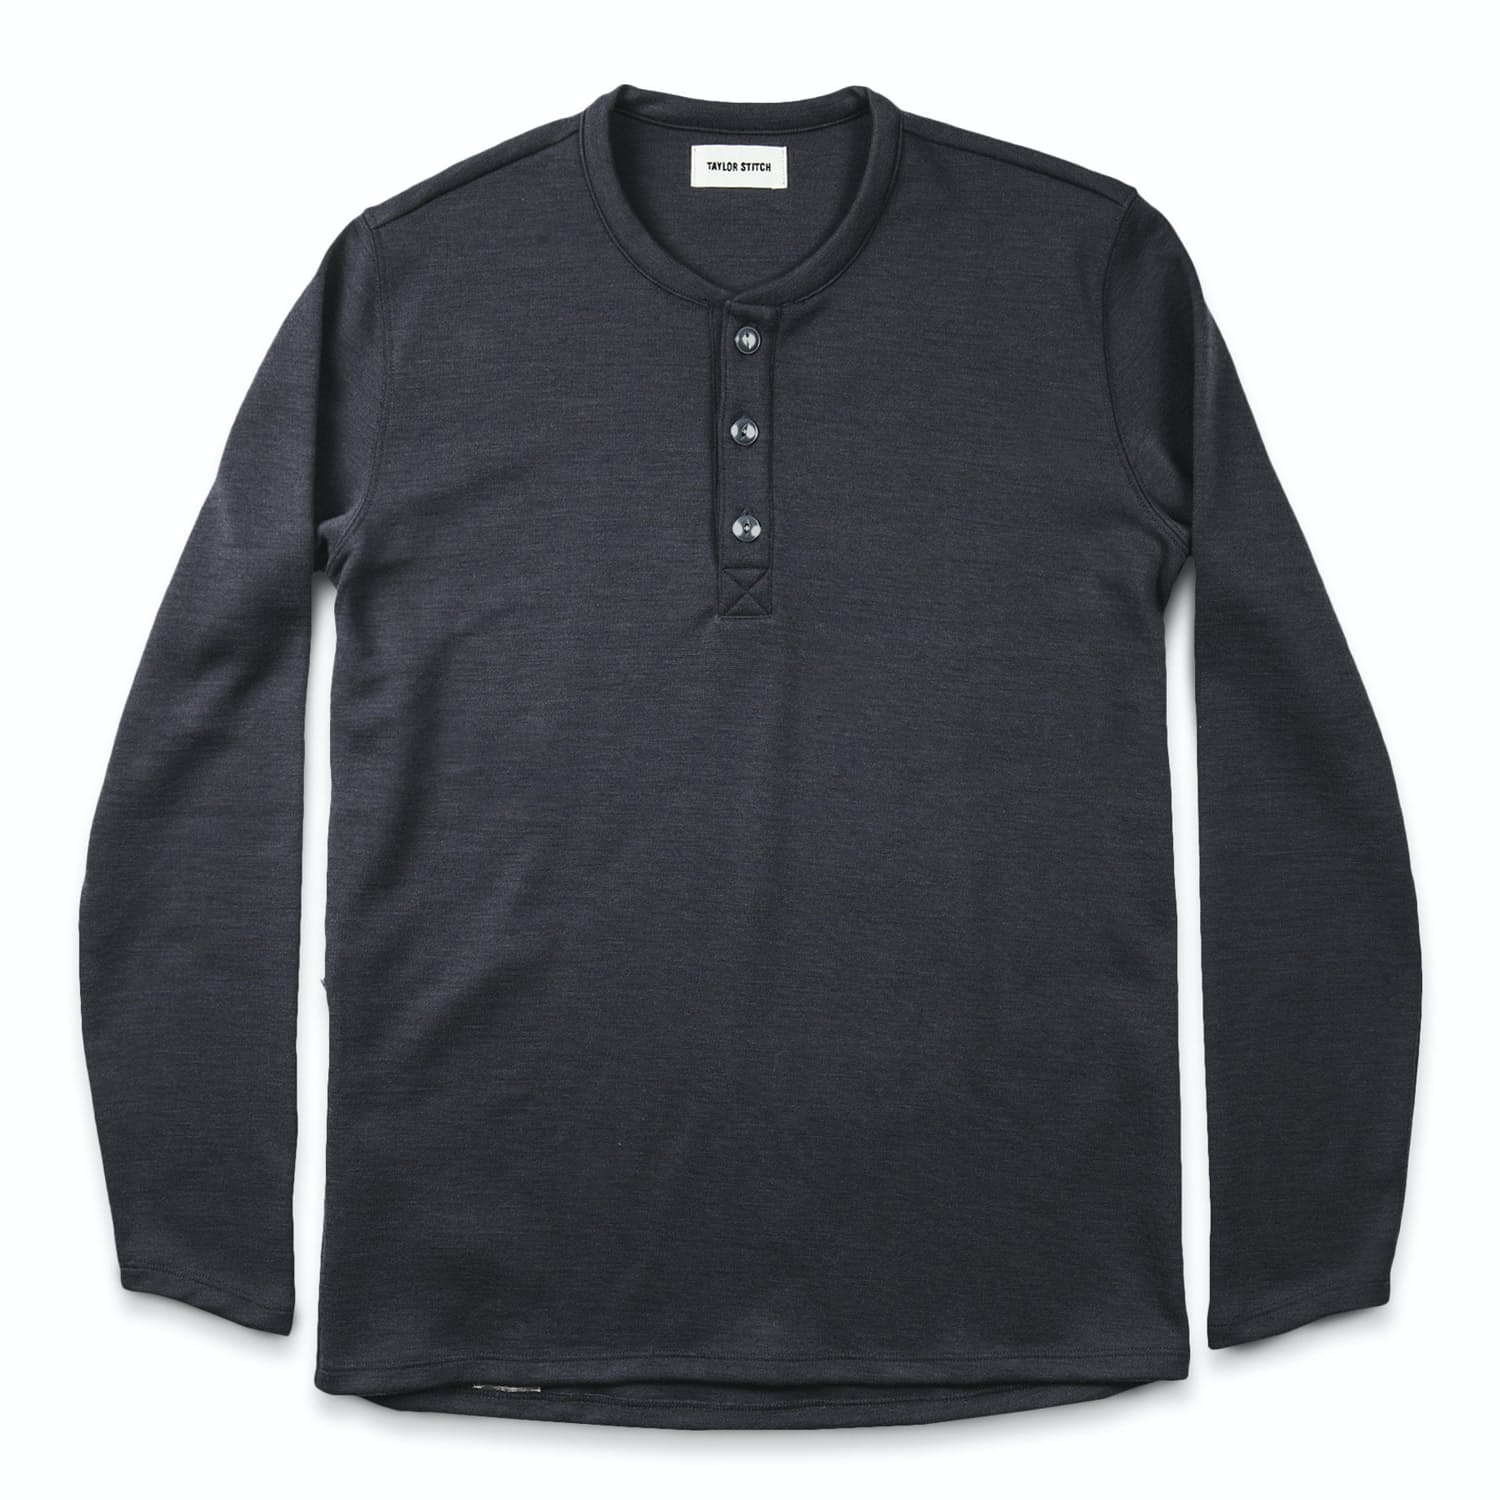 T0oa6cjhy4 taylor stitch the merino henley 0 original